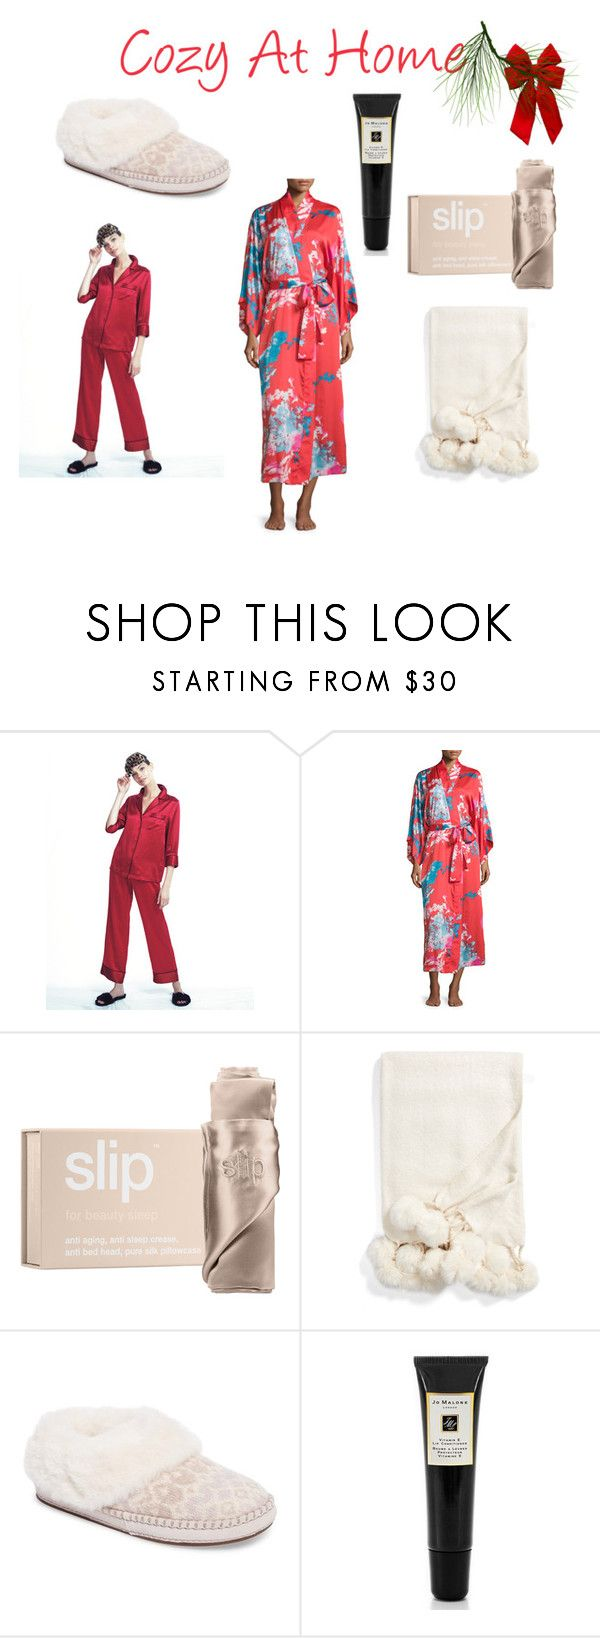 """""""Cozy At Home Gift Guide"""" by suzanne-smith-i on Polyvore featuring Natori, Slip, Nordstrom, UGG and Jo Malone"""